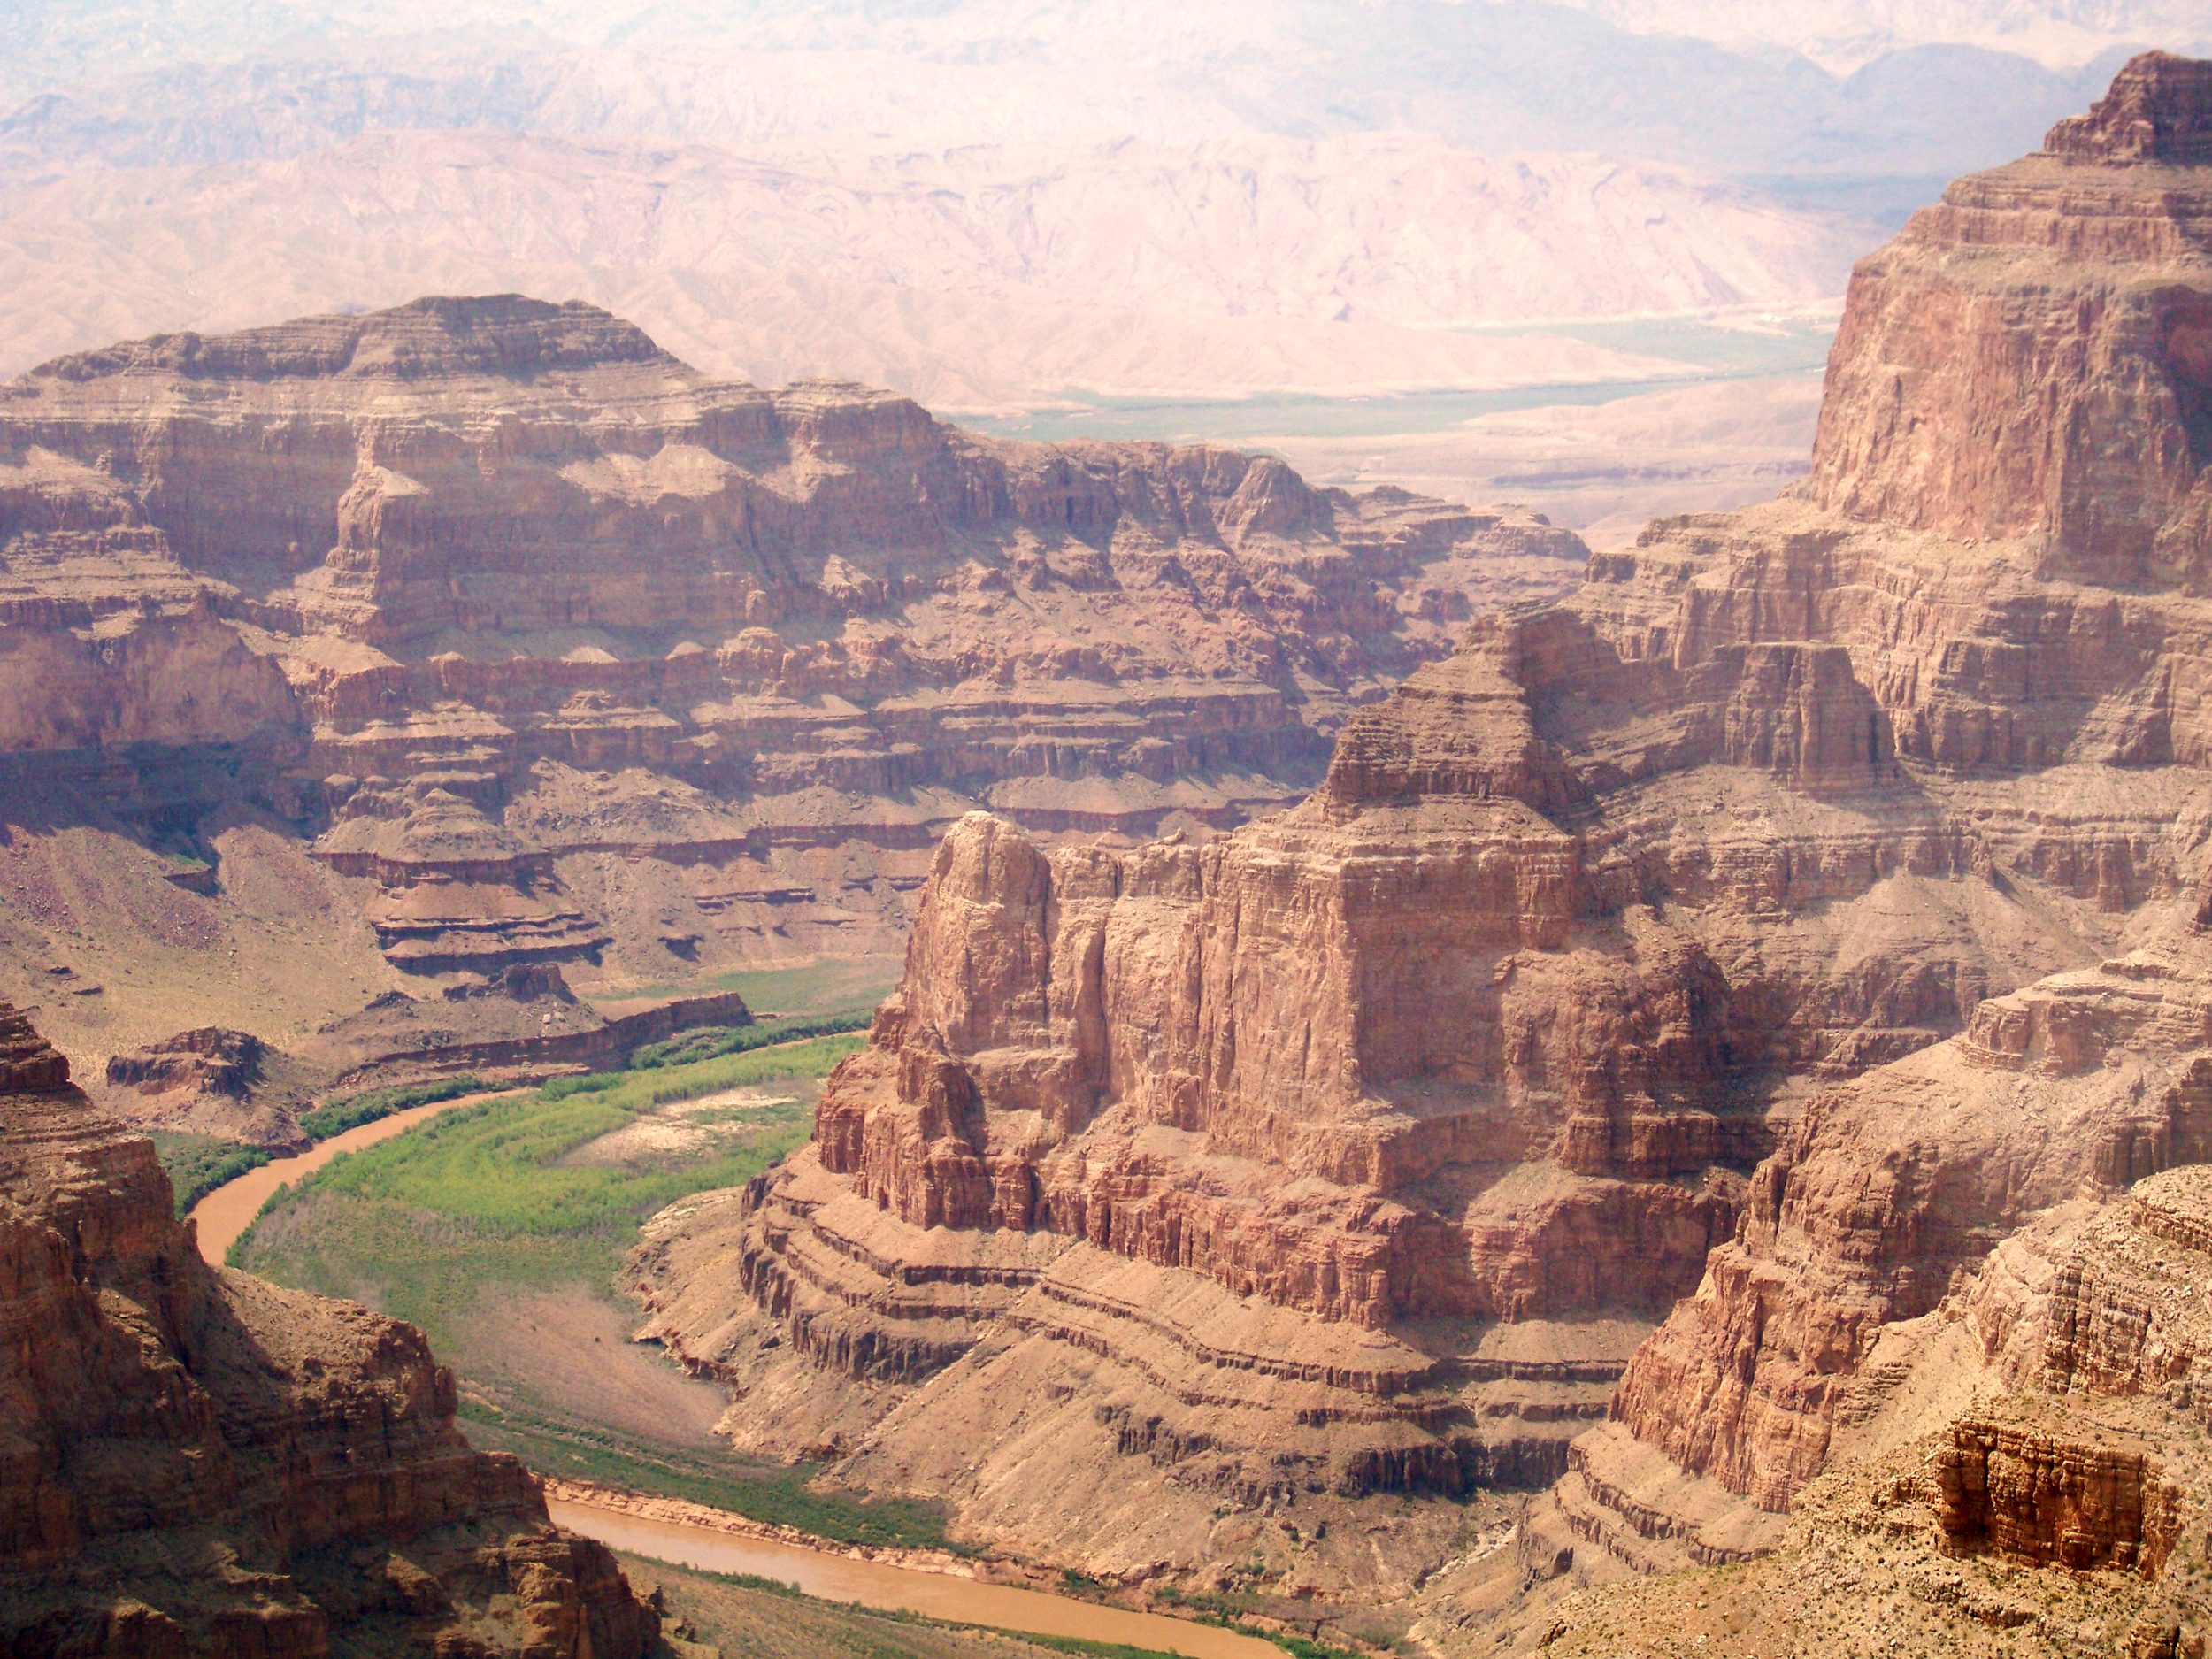 And the majestic Grand Canyon to the east.